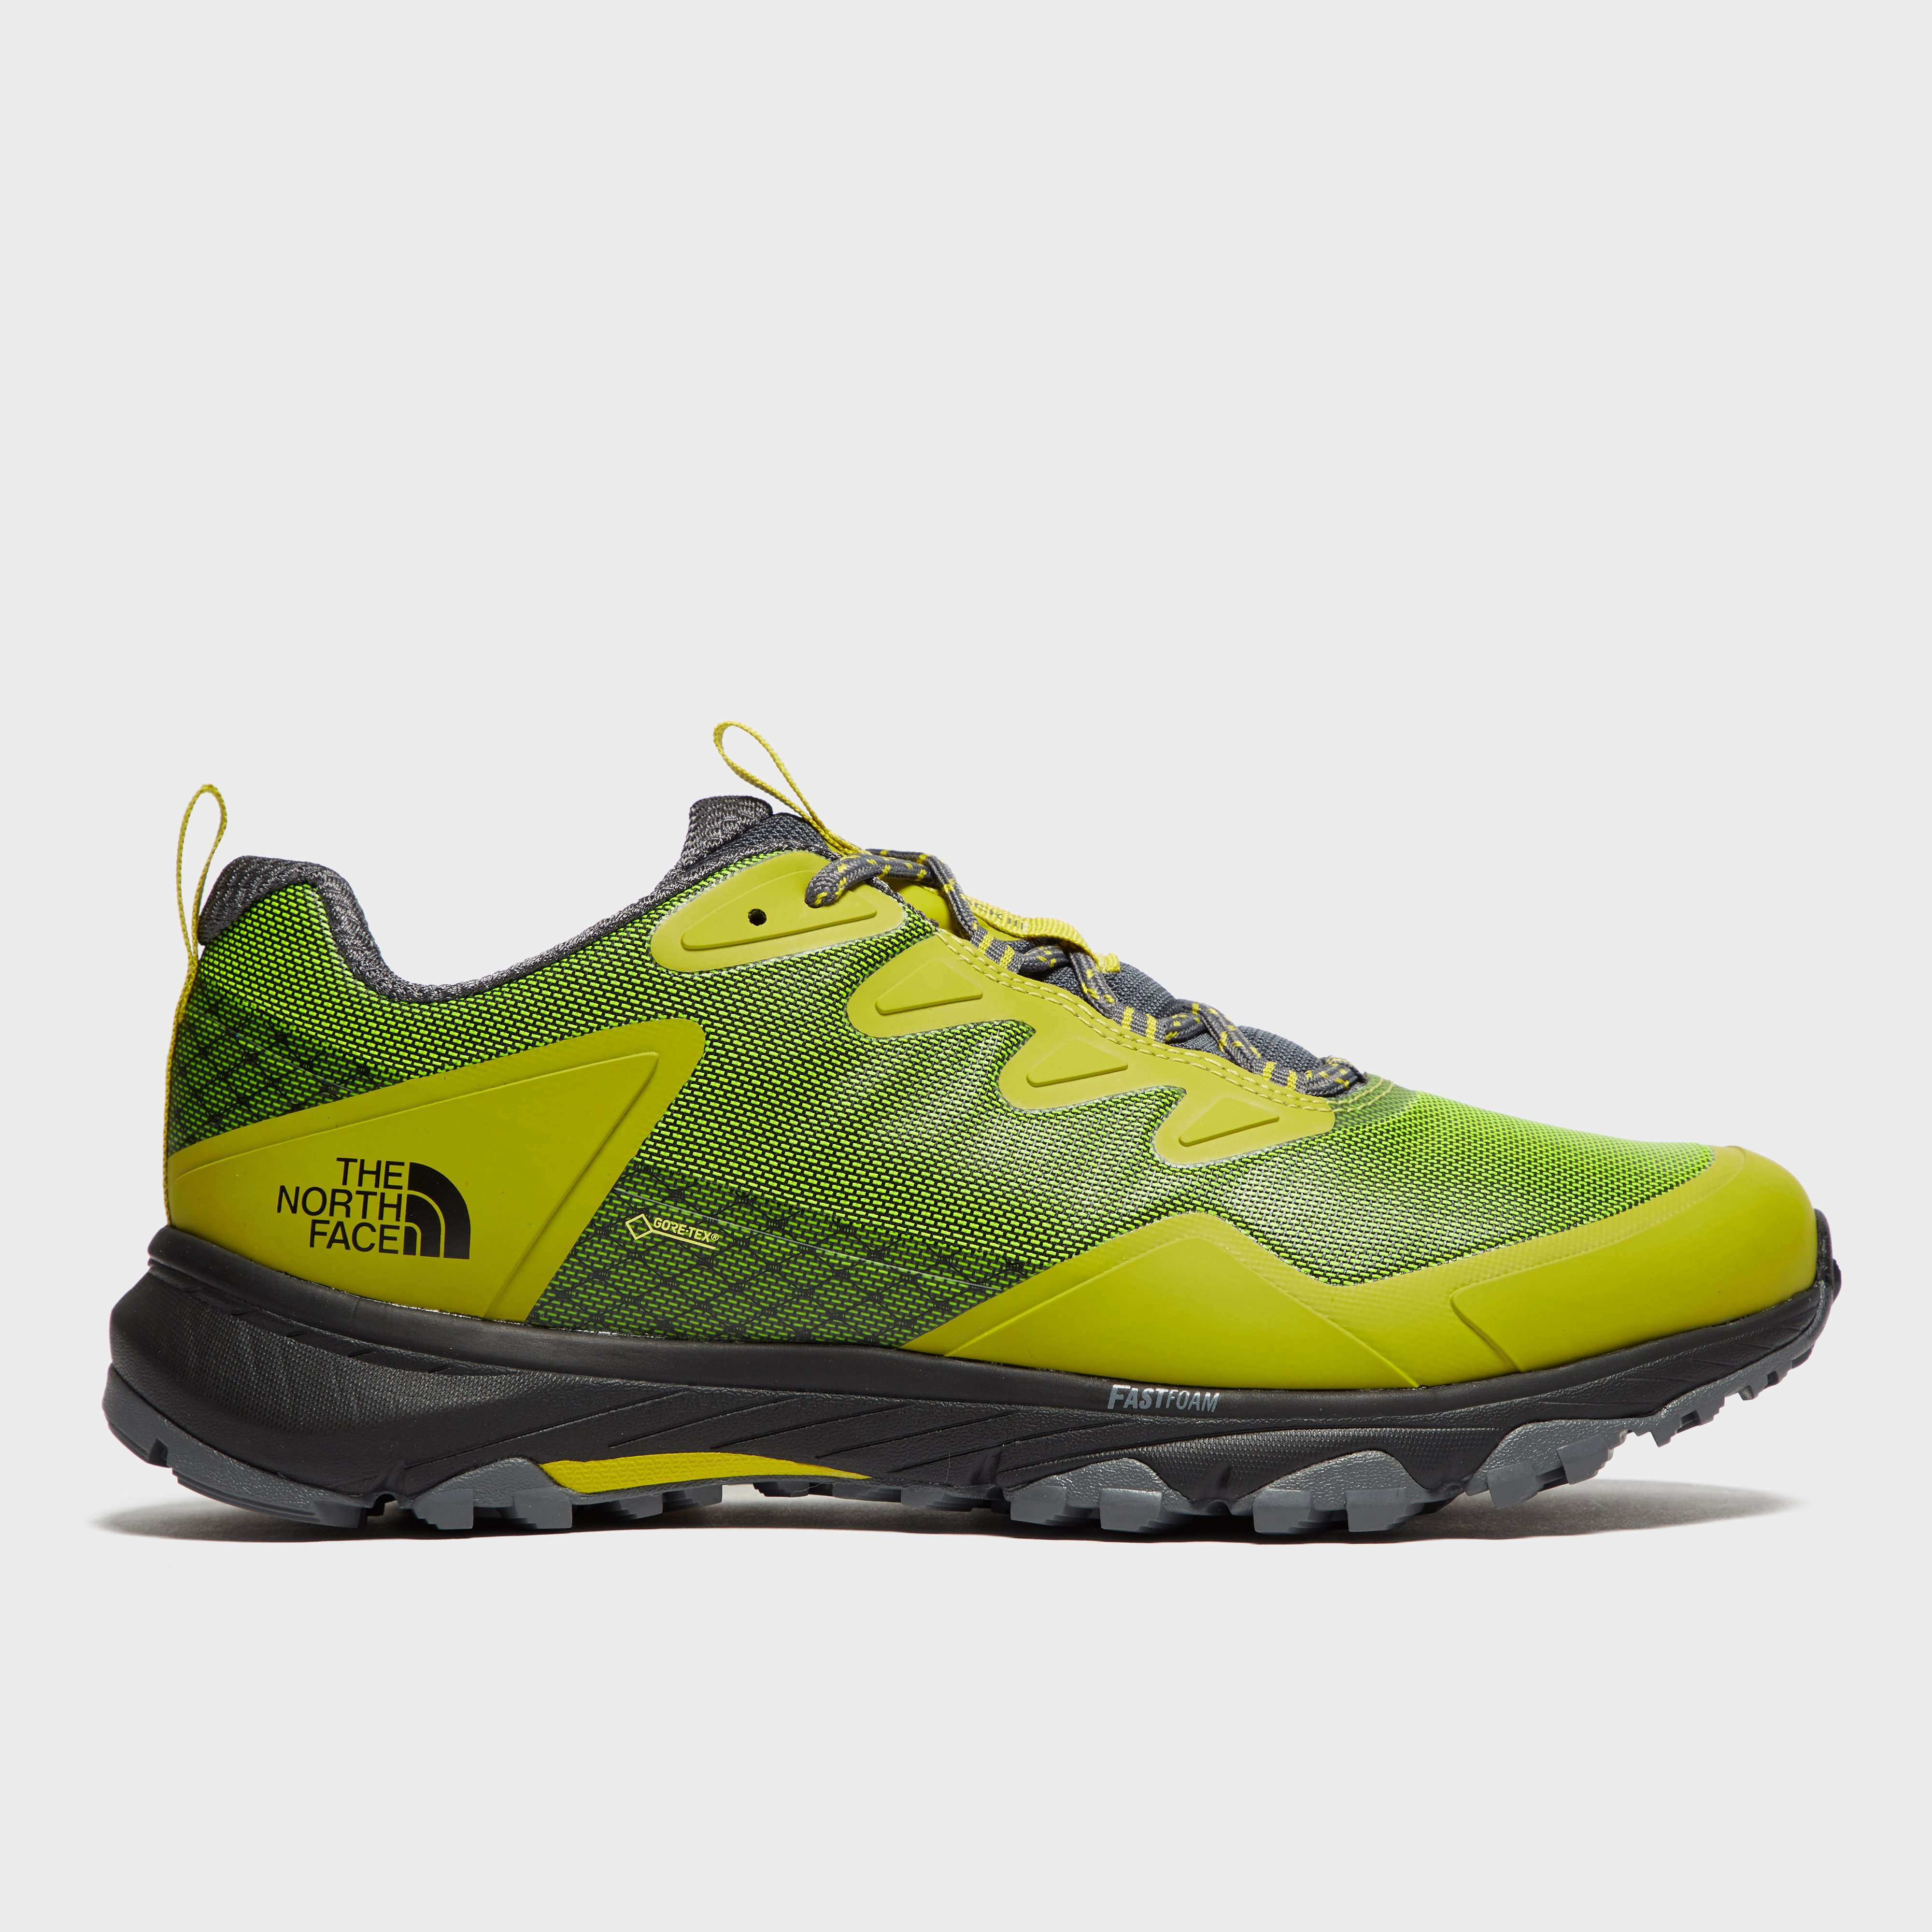 THE NORTH FACE Men's Ultra Fastpack III GORE-TEX® Shoe